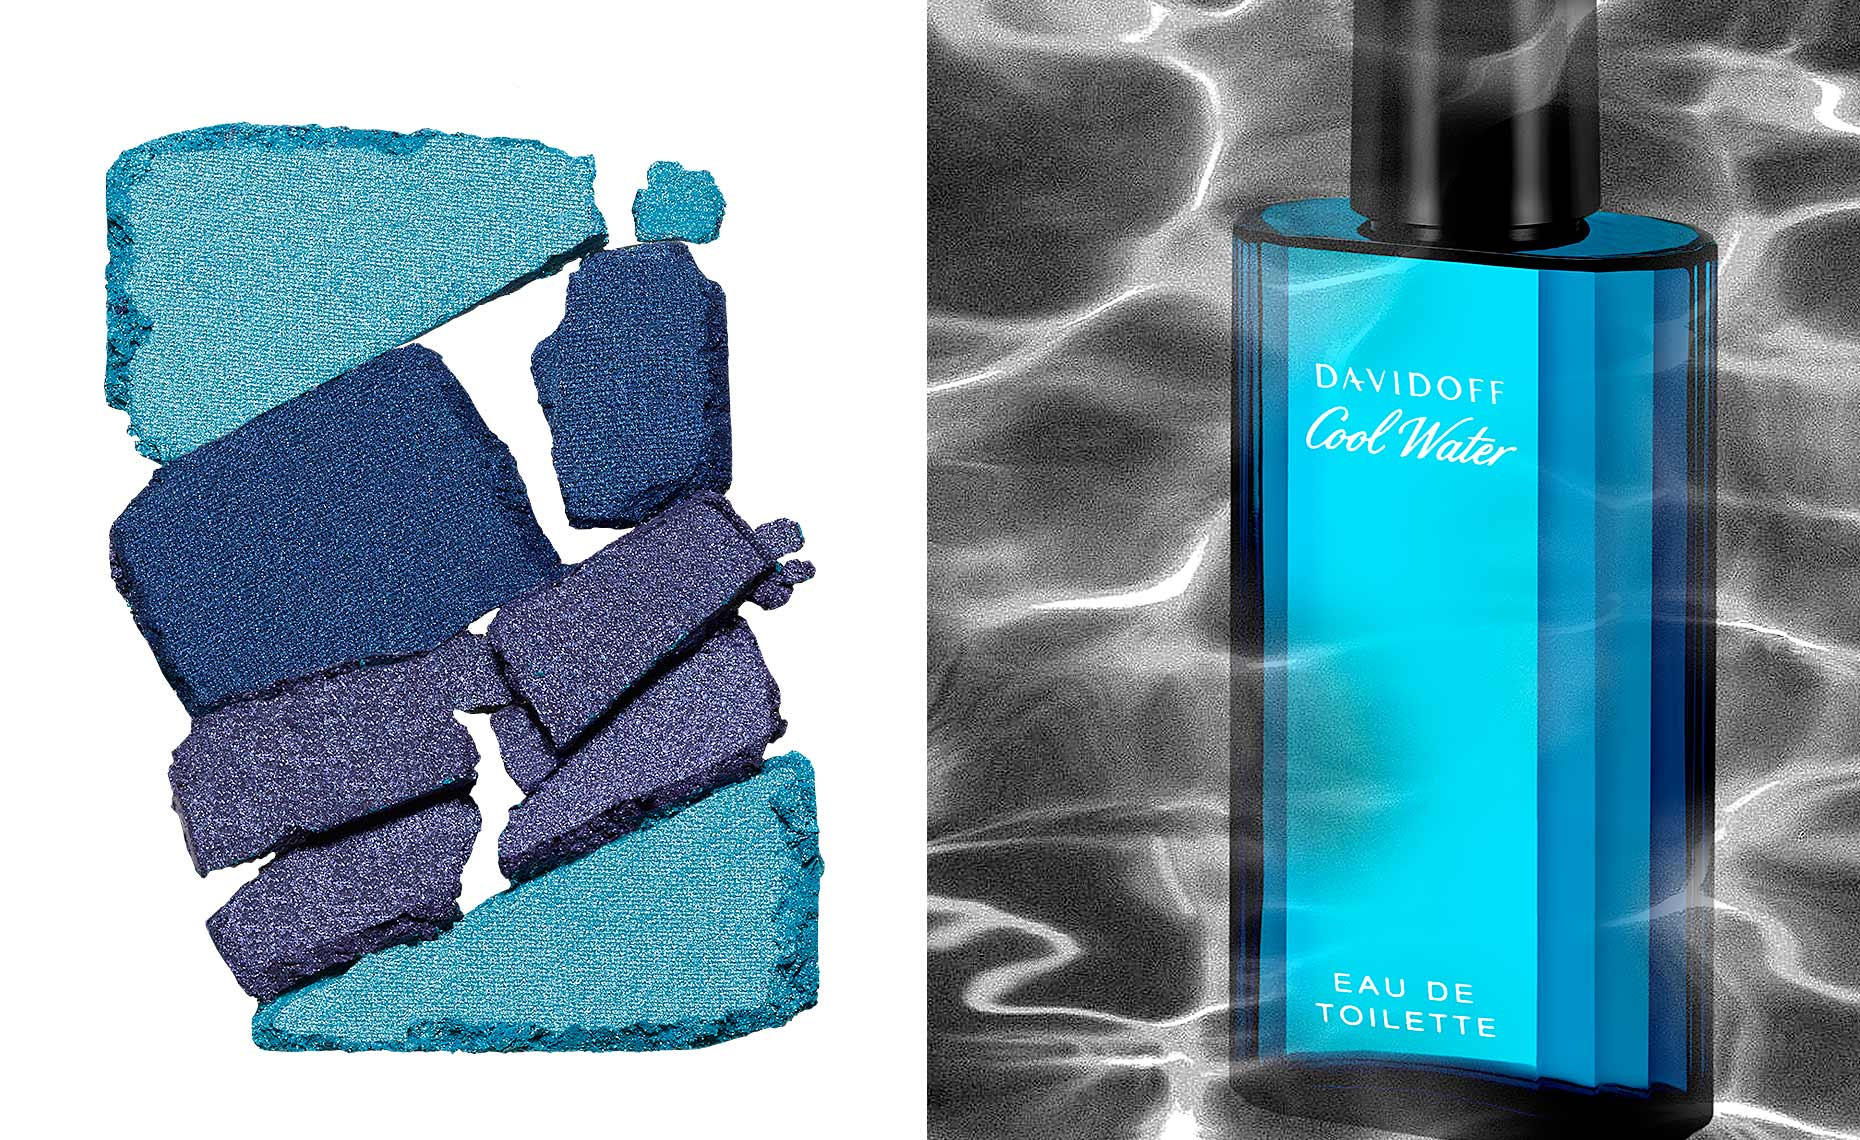 eyeshadow palette and Davidoff Cool Water fragrance